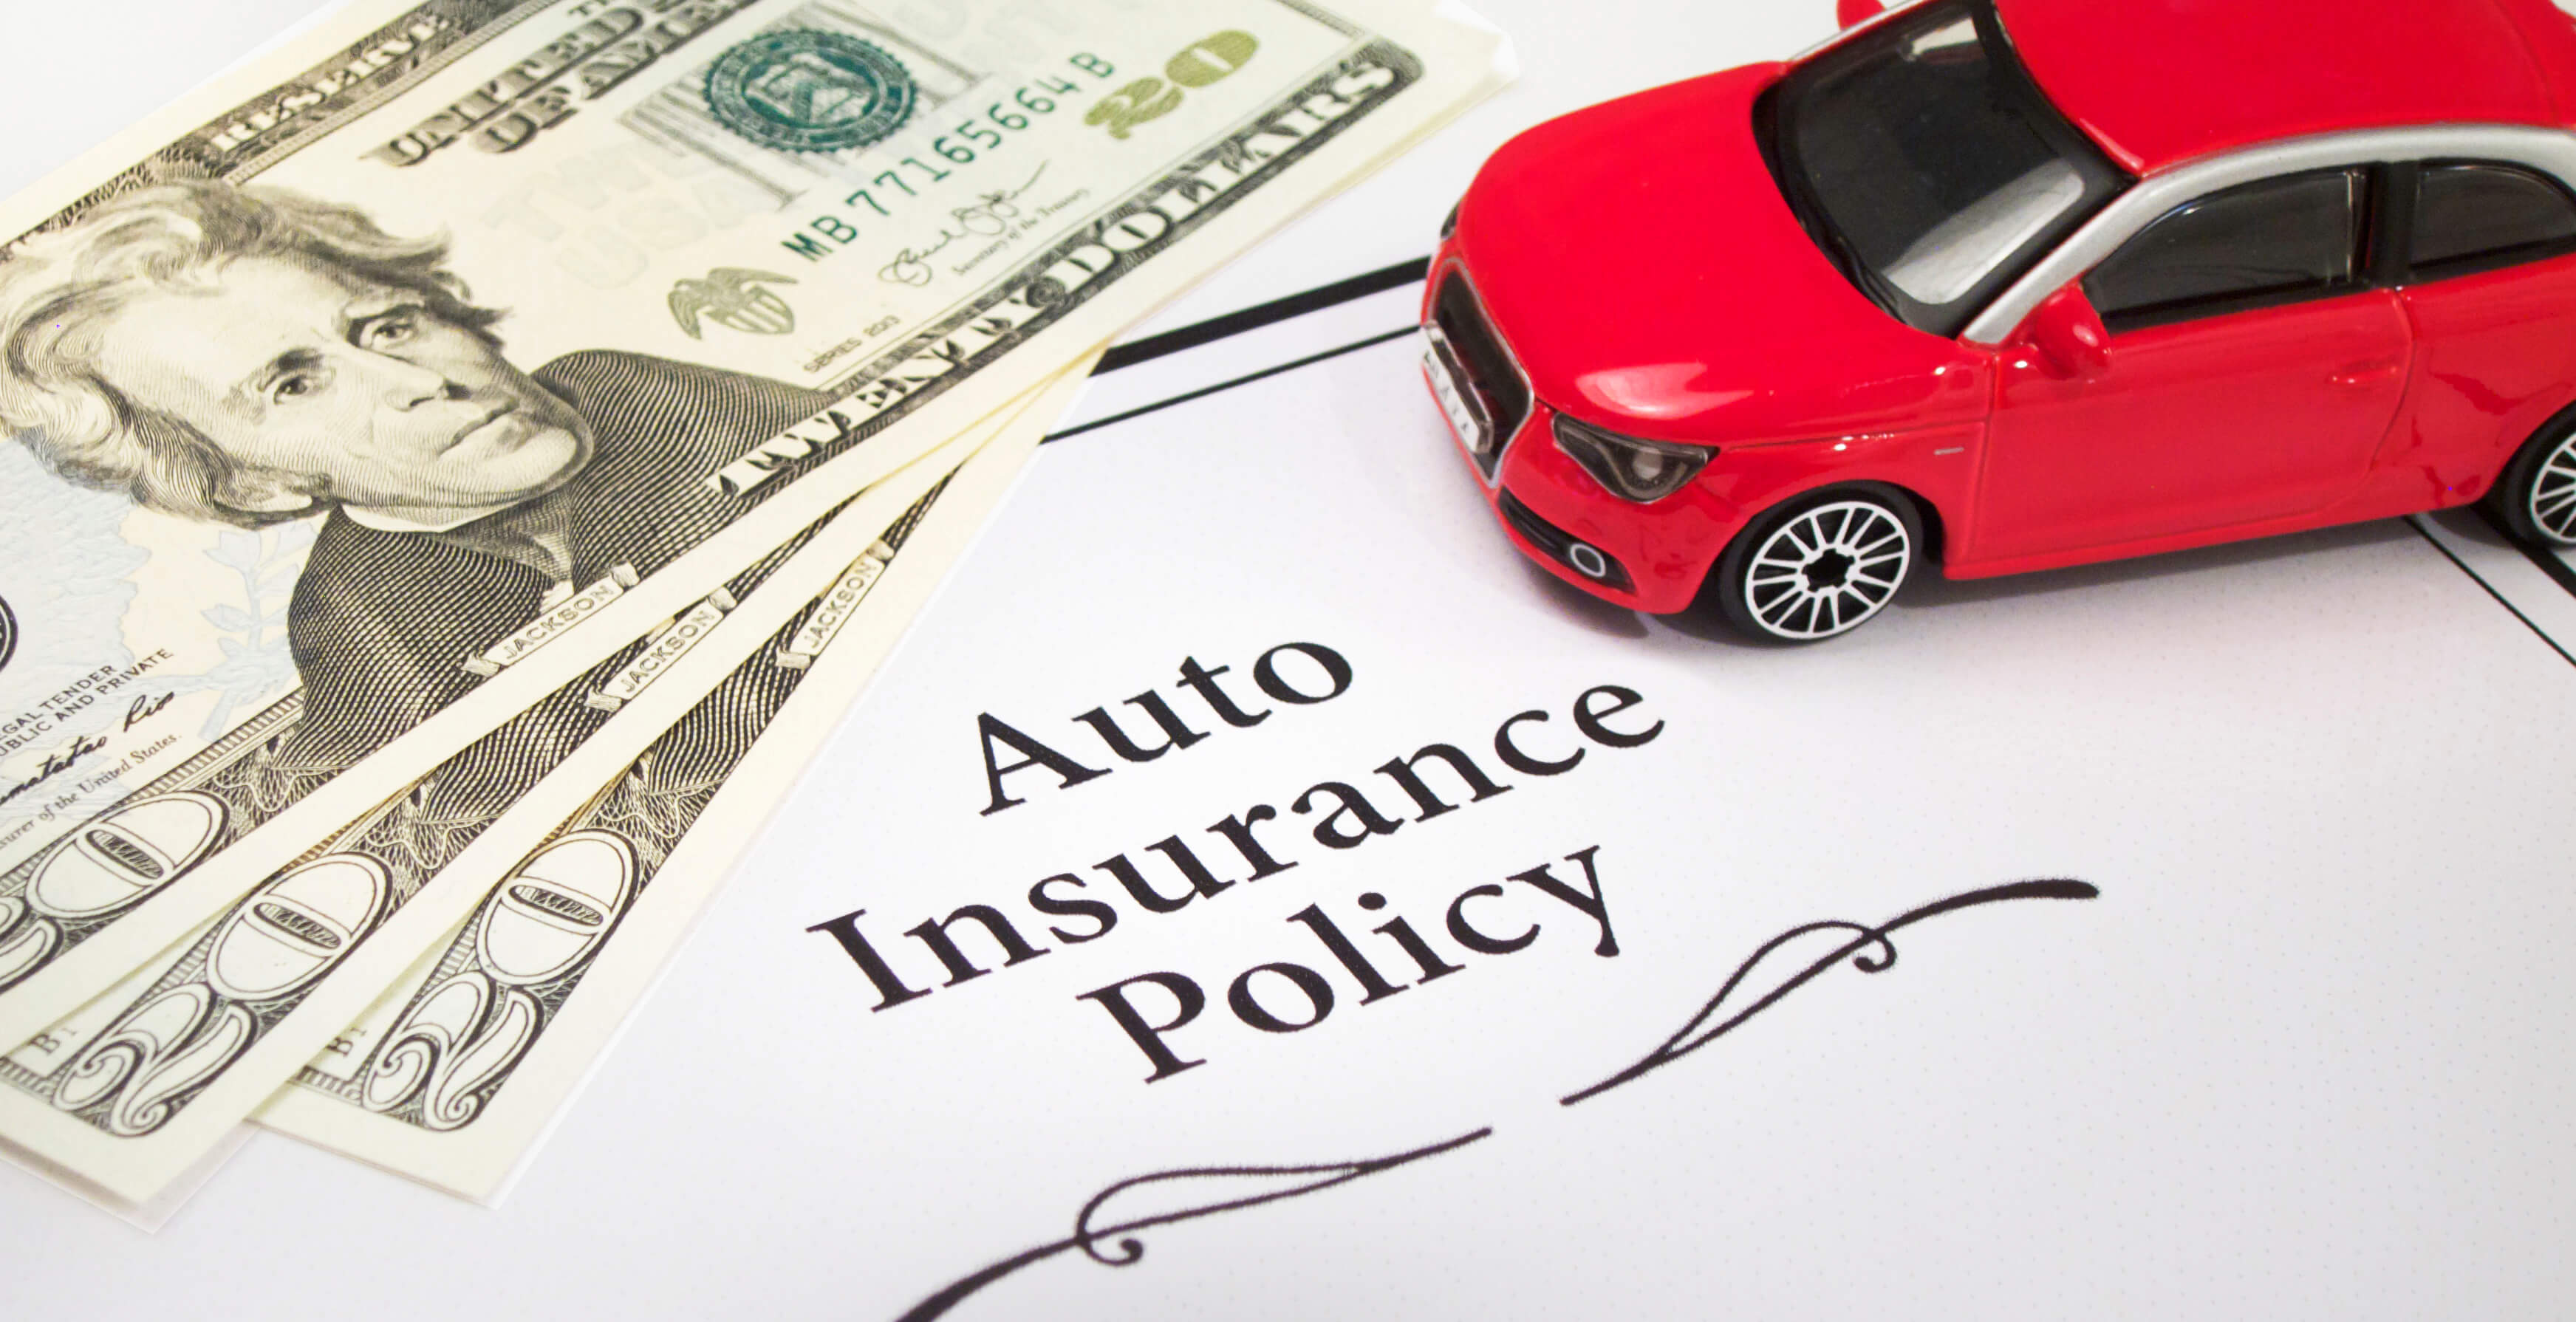 New Classic Car Insurance Gets Modern